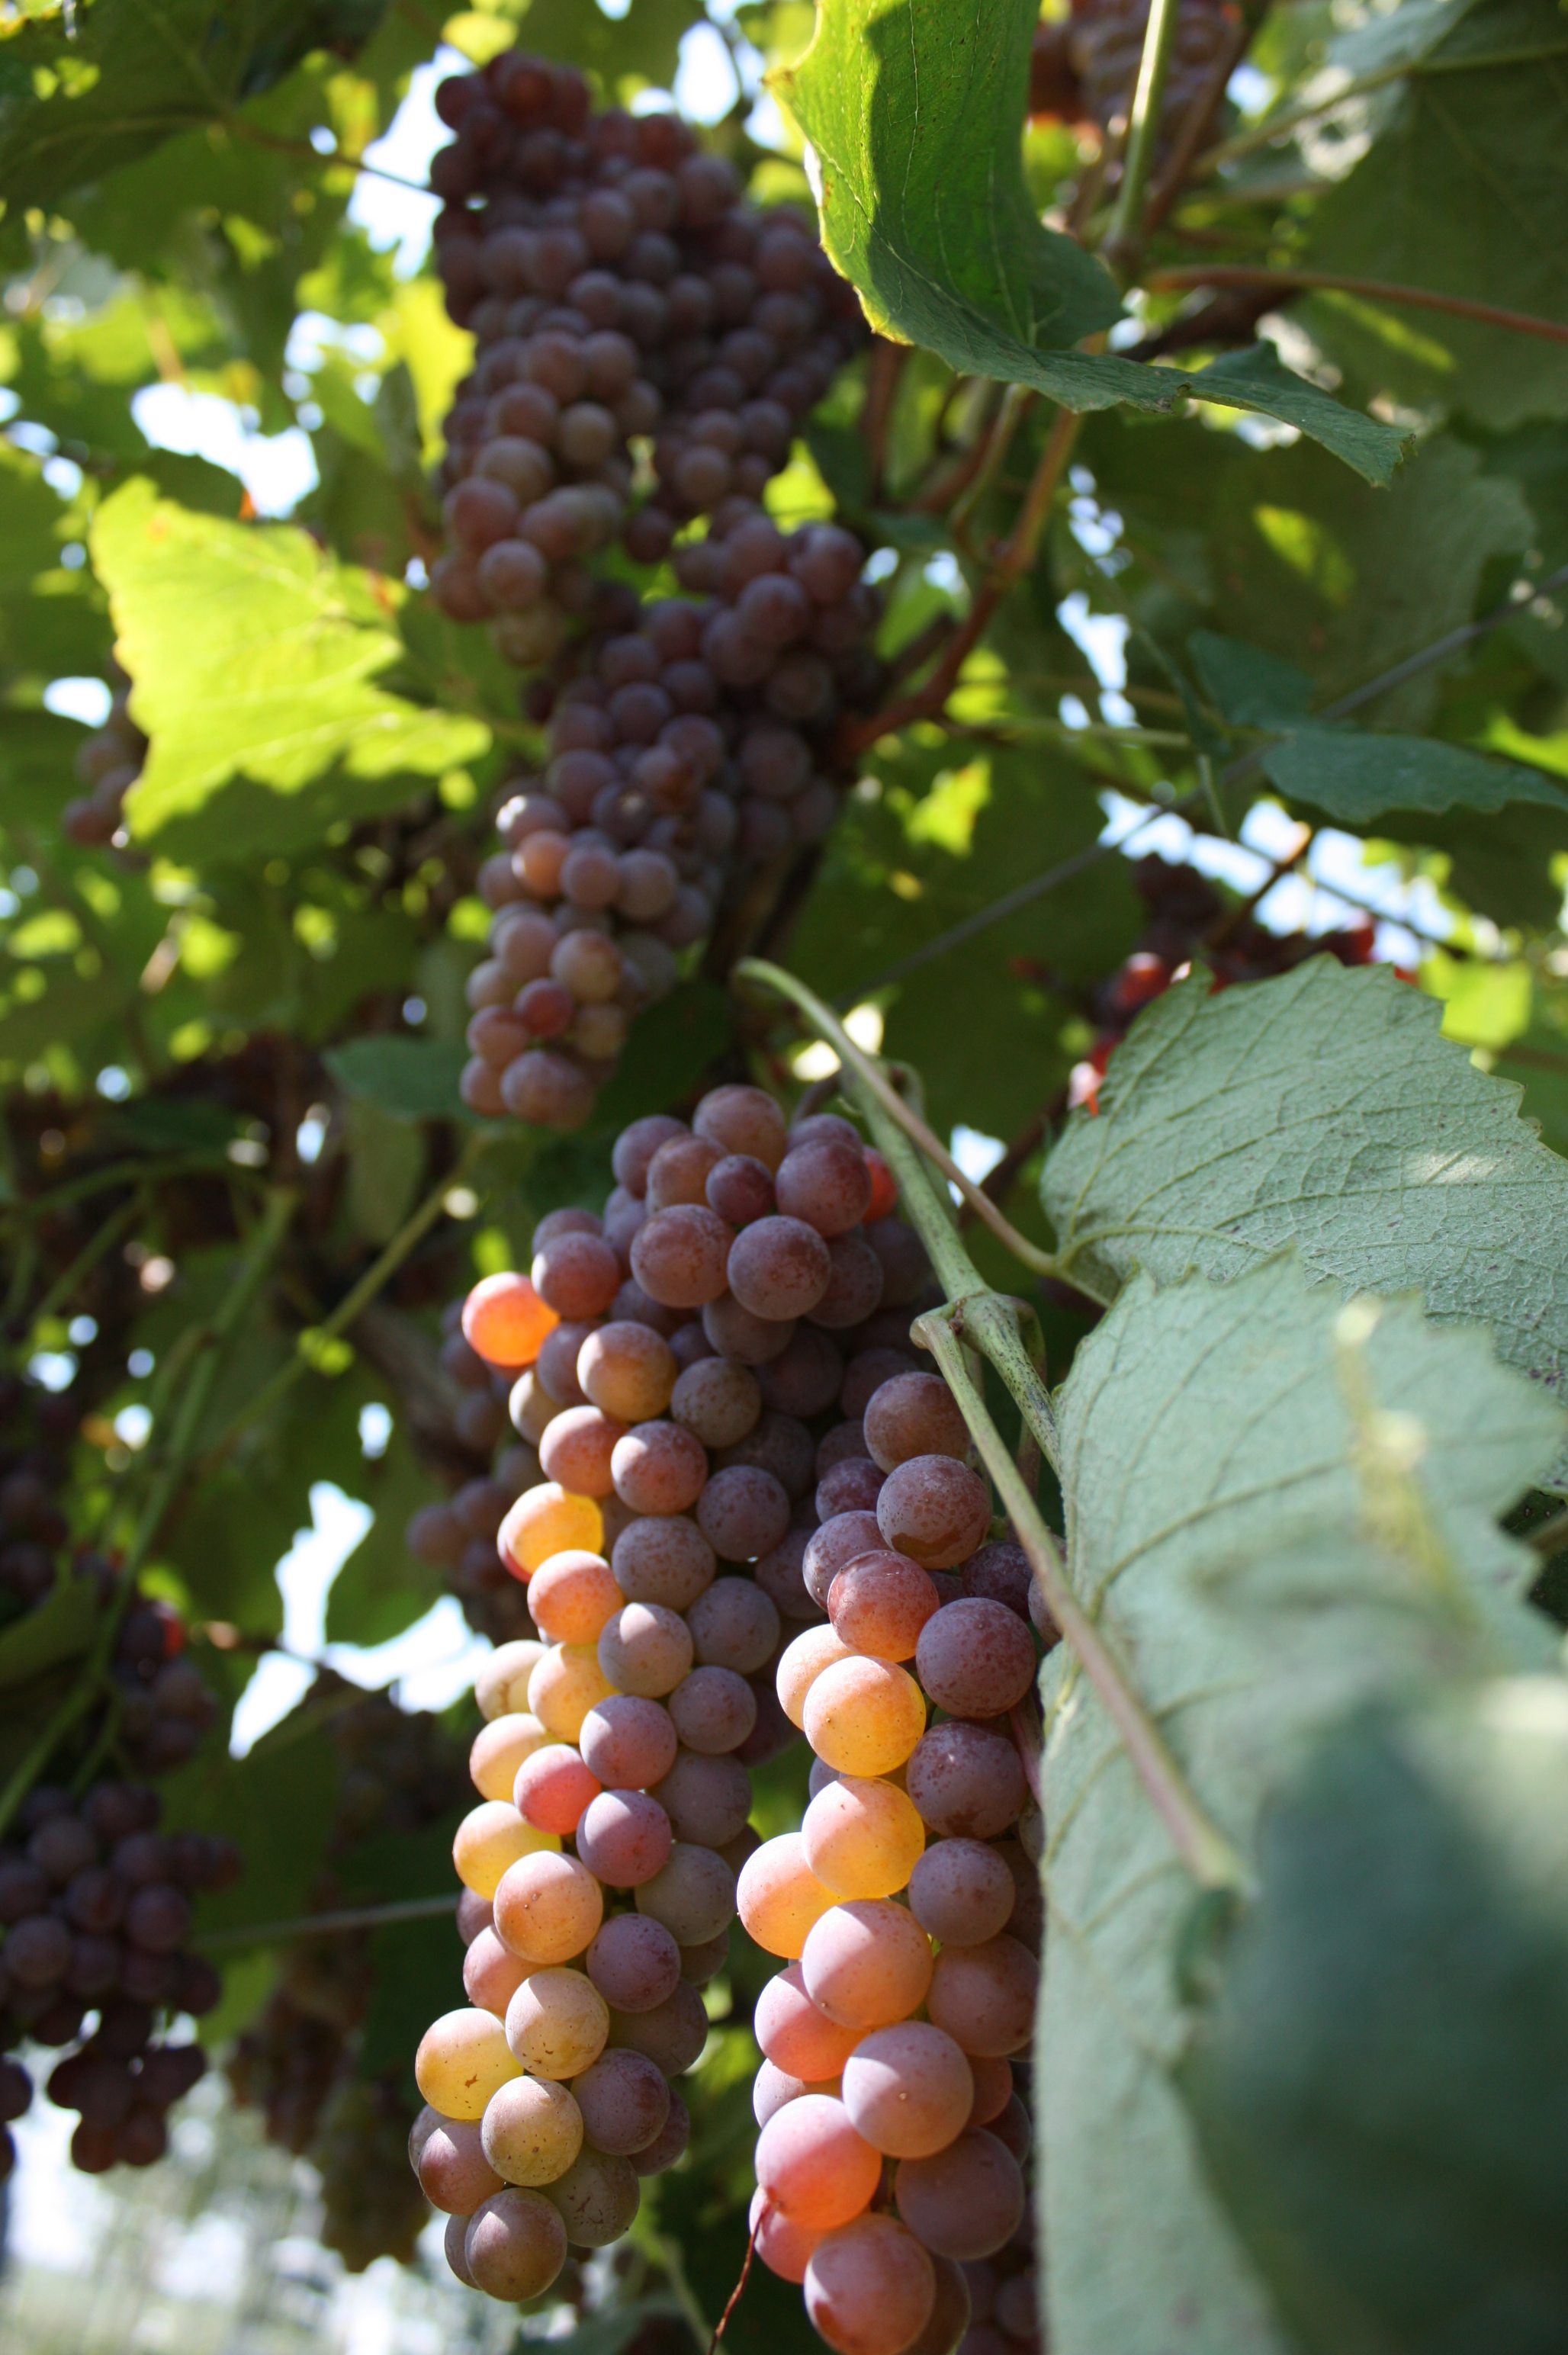 Pin by mohd adnan mahmood on grapes on vines pinterest for Table grapes